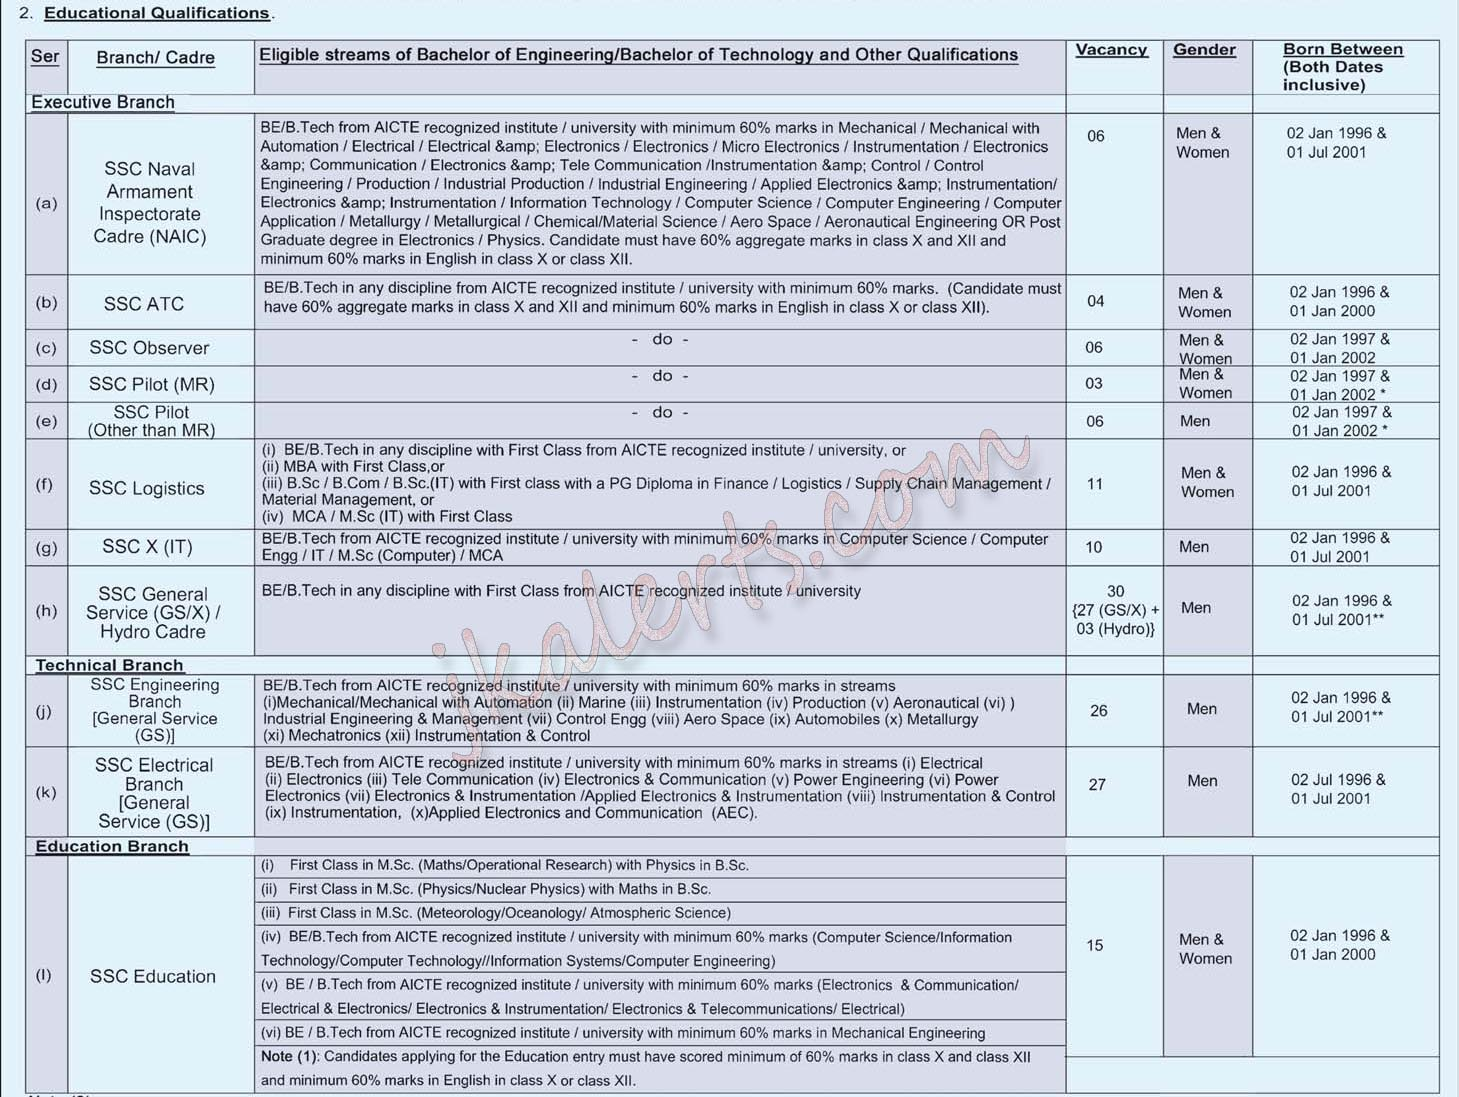 INDIAN NAVY ENTRANCE TEST (INET) FOR VARIOUS ENTRIES